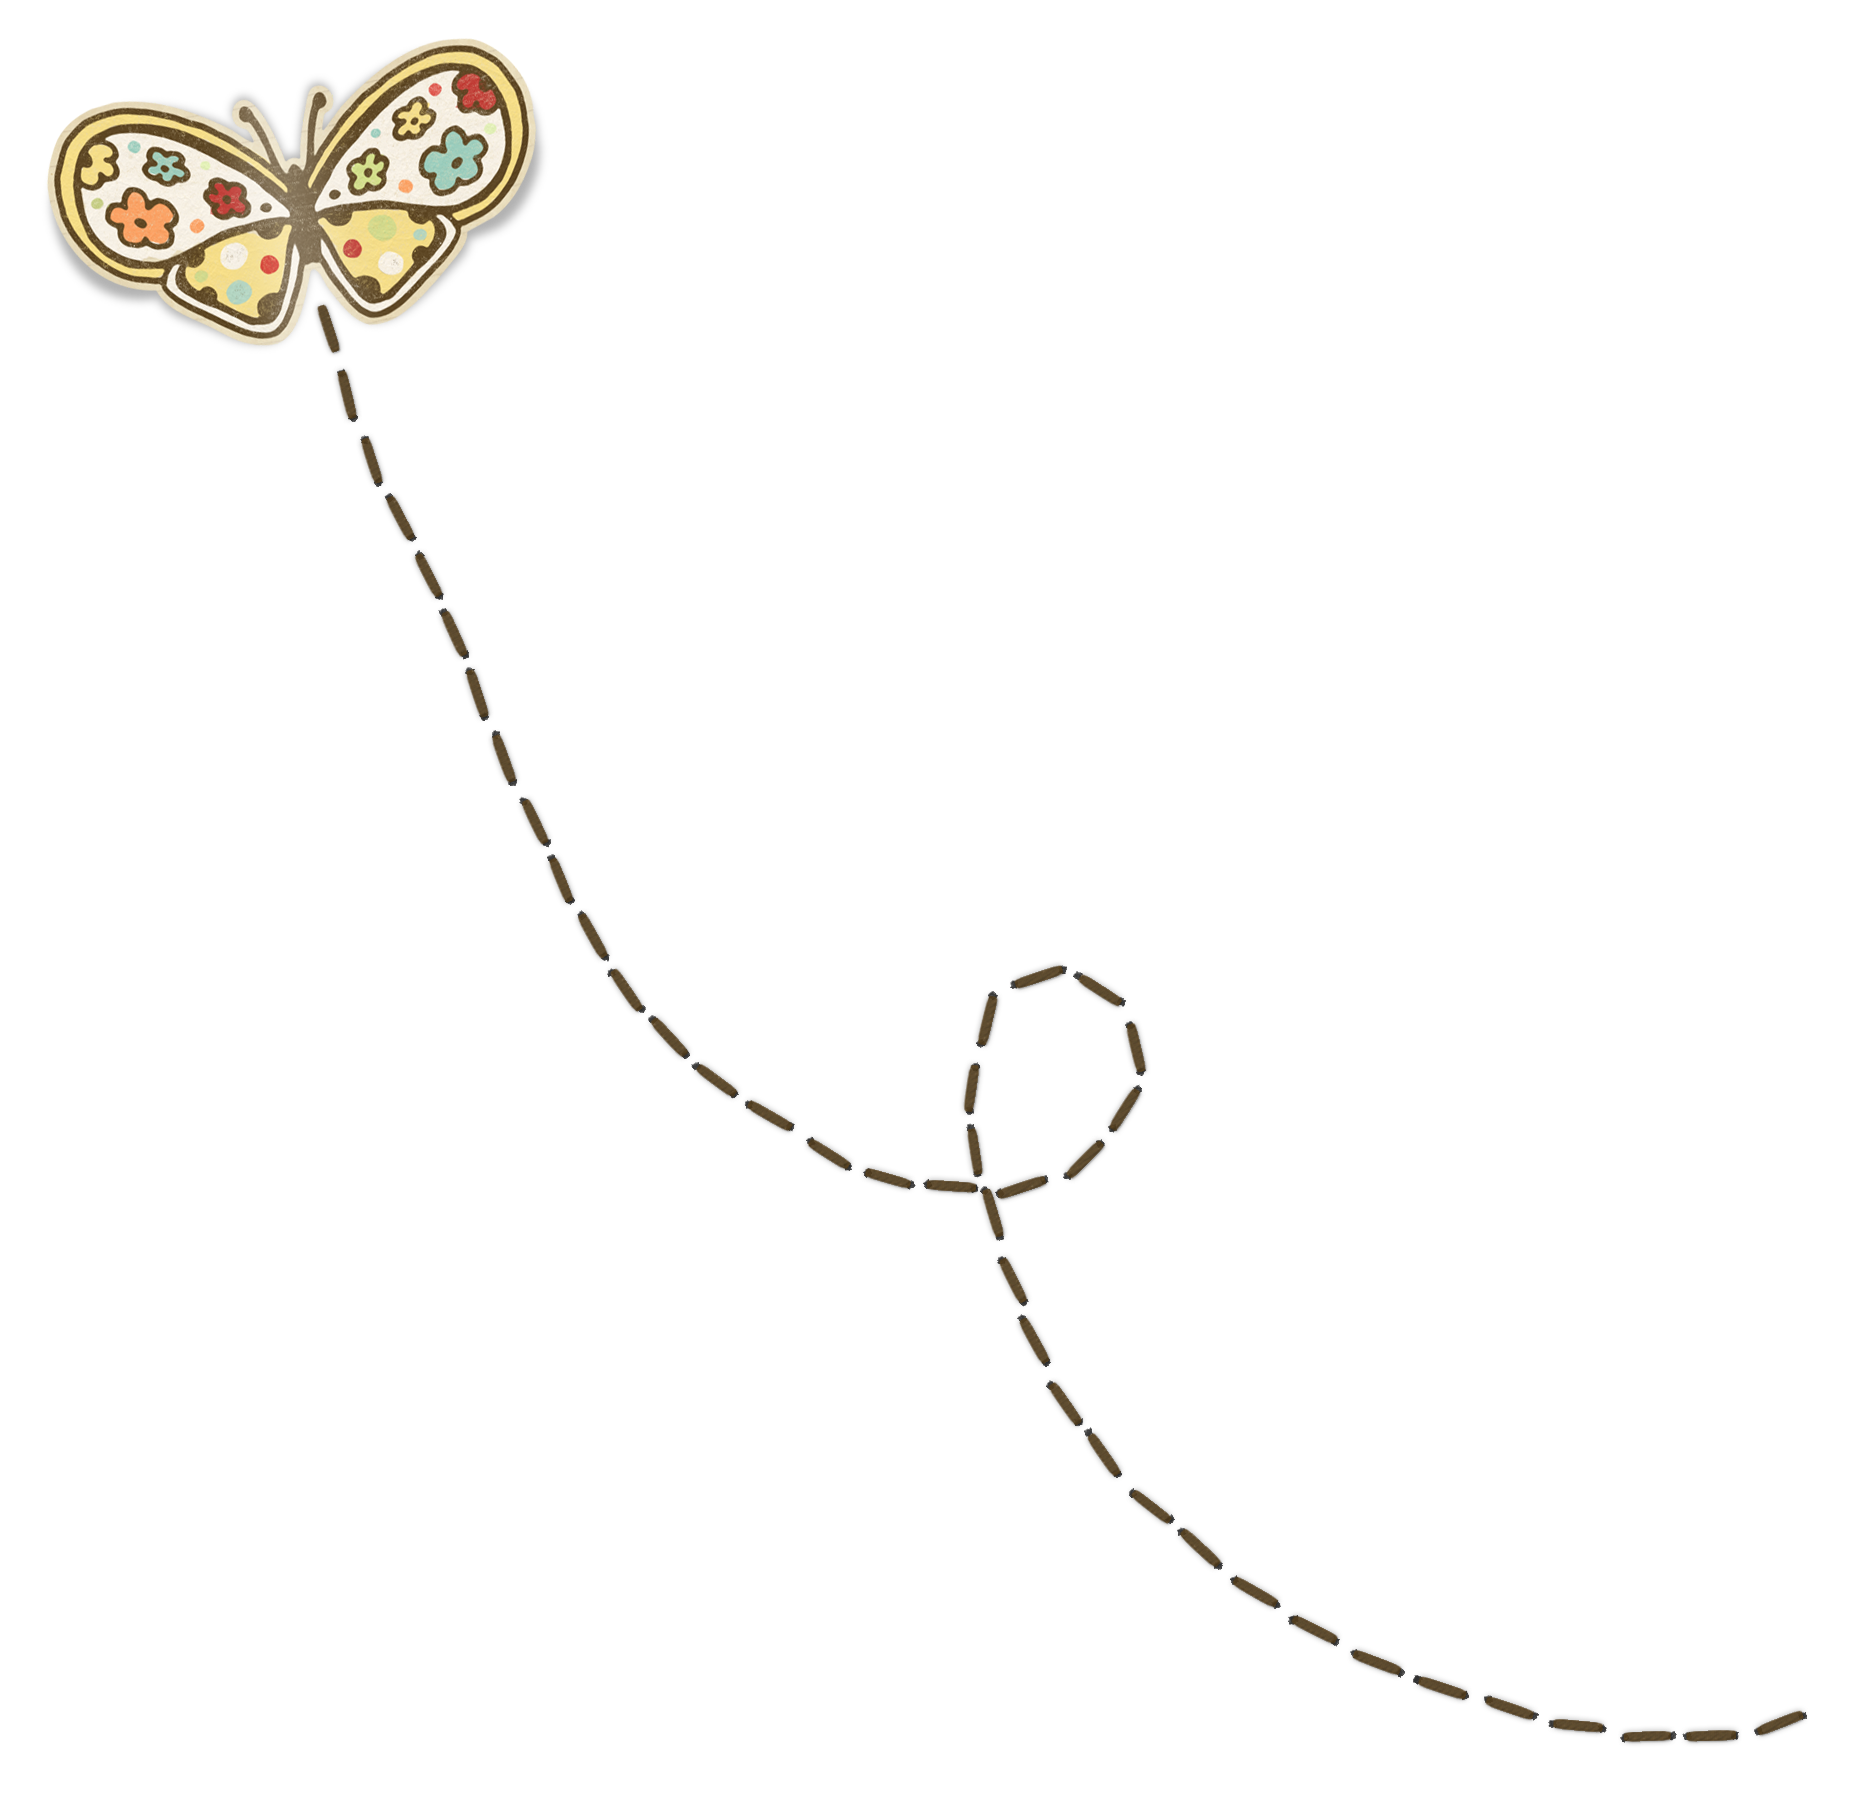 Trail clipart butterfly, Trail butterfly Transparent FREE.